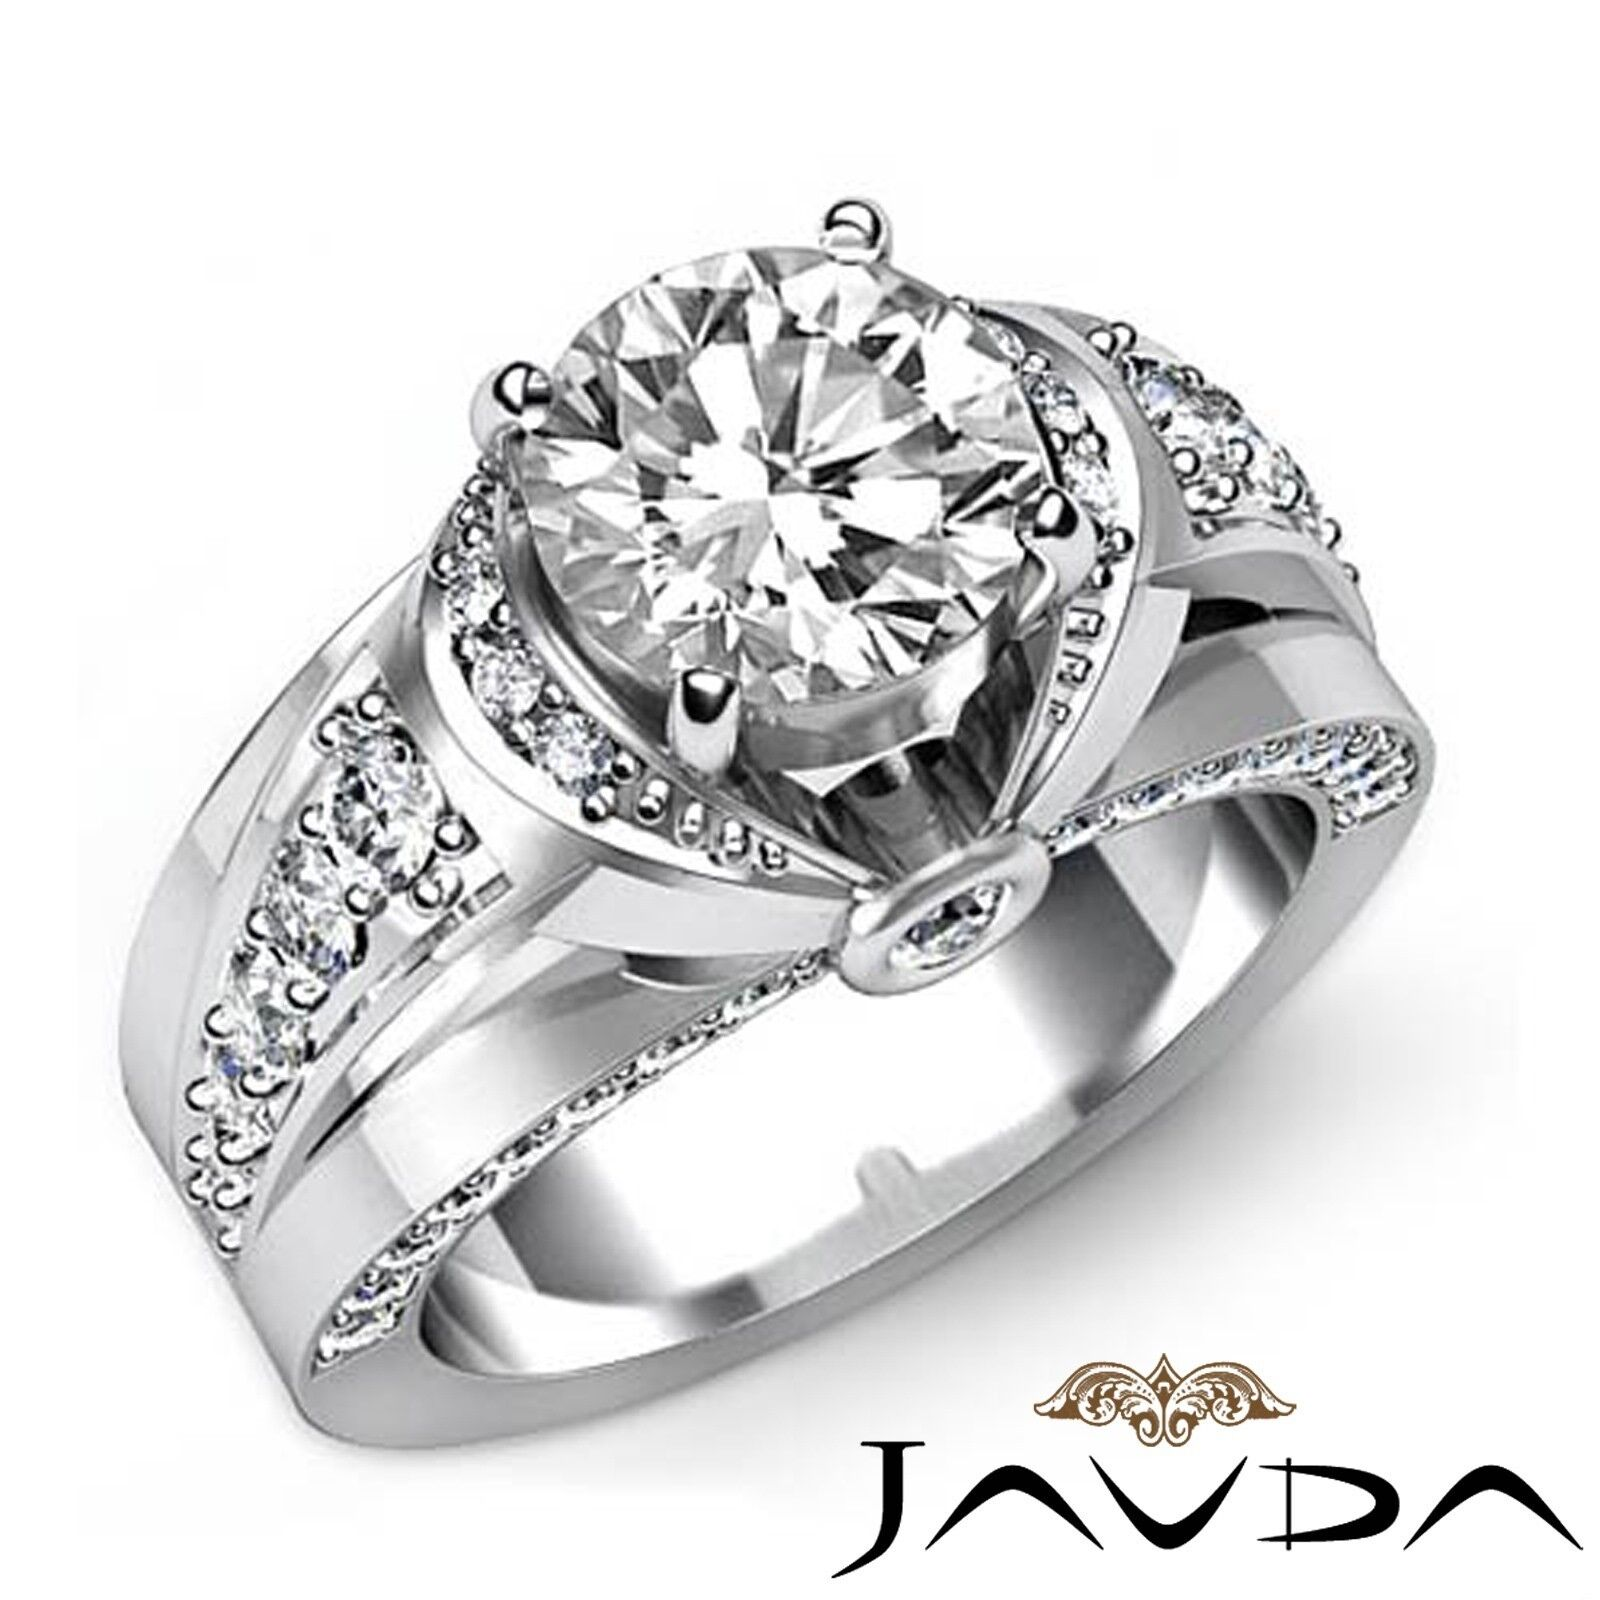 2.5ct Knot Classic Sidestone Round Diamond Engagement Ring GIA I-VVS2 White Gold